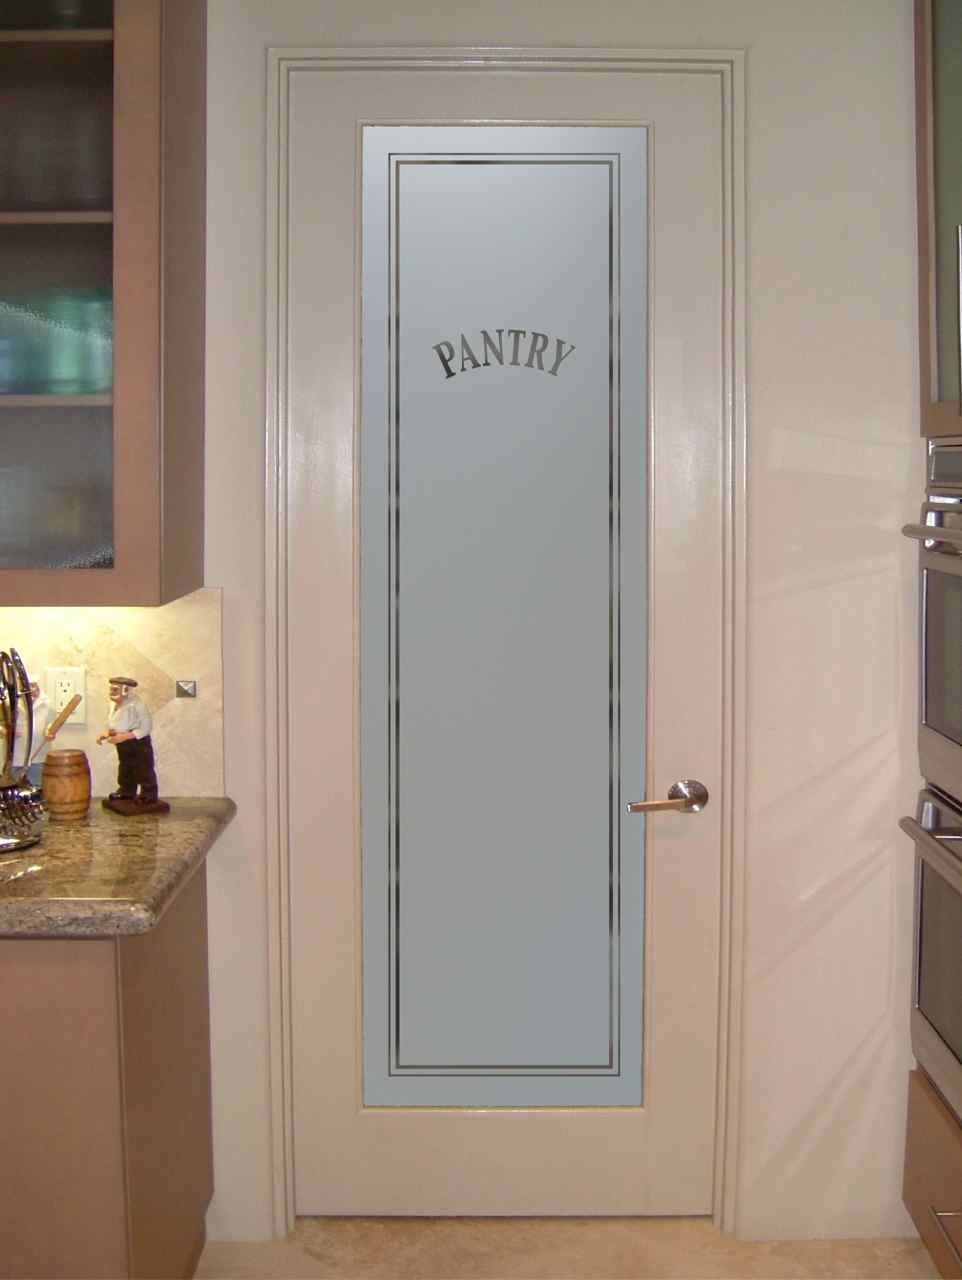 Pantry Doors With Frosted Glass Sans Soucie Art Glass